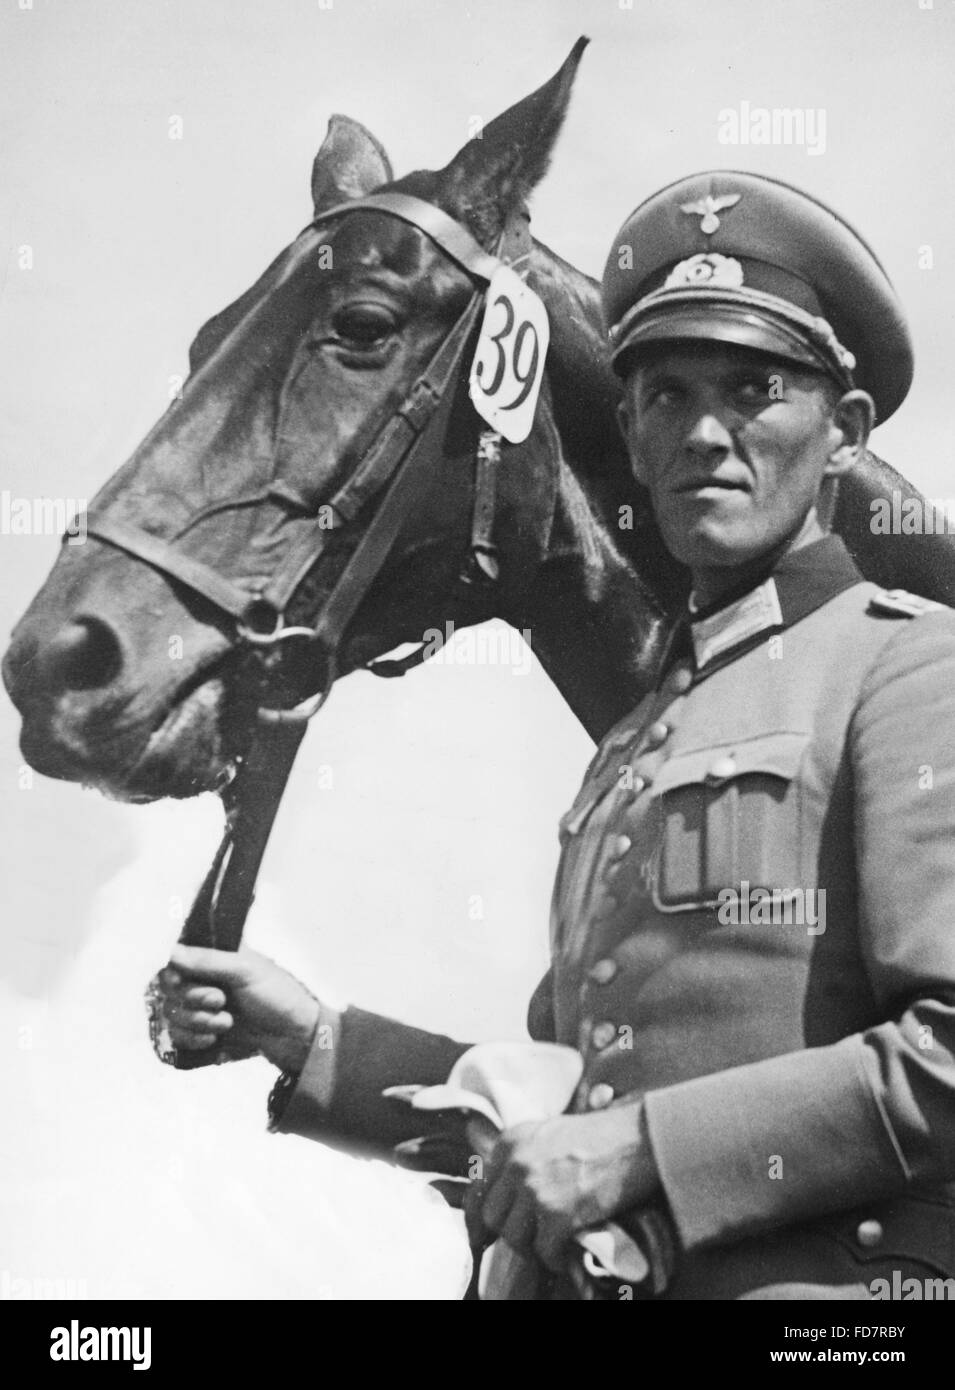 Cavalryman preparing for the Olympic Games,1935 - Stock Image